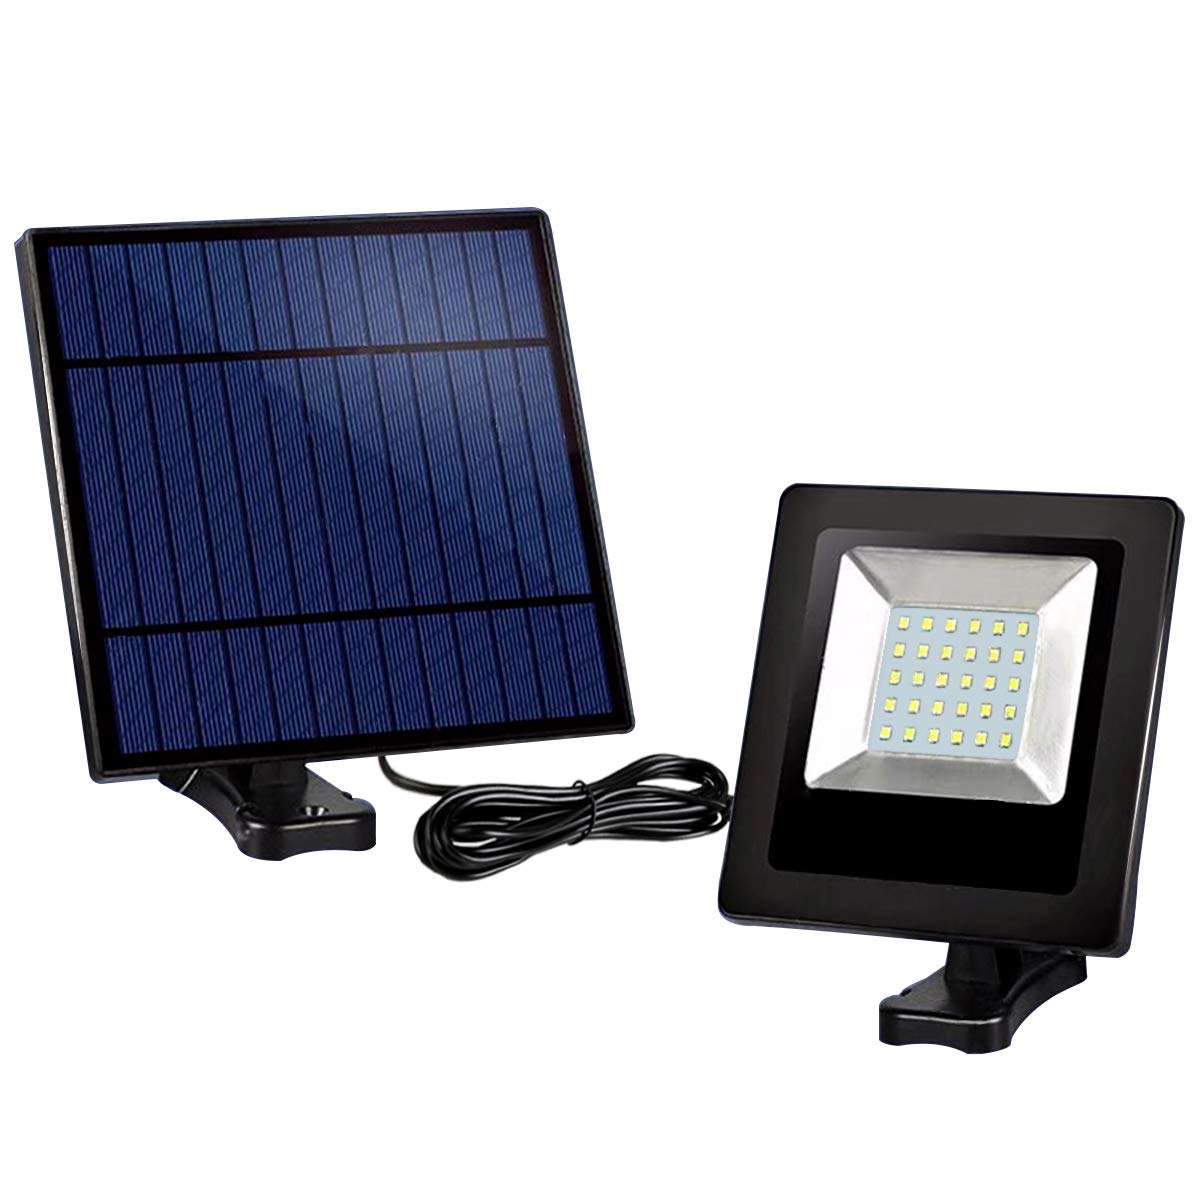 Solar Powered Lights Outdoor, Awanber Bright White Light IP65 Waterproof Auto Dusk to Dawn 350° Adjustable Solar Security Flood Lights for Barn, Garden, Garage, Pathway, Yard, Patio, Lawn, Balcony